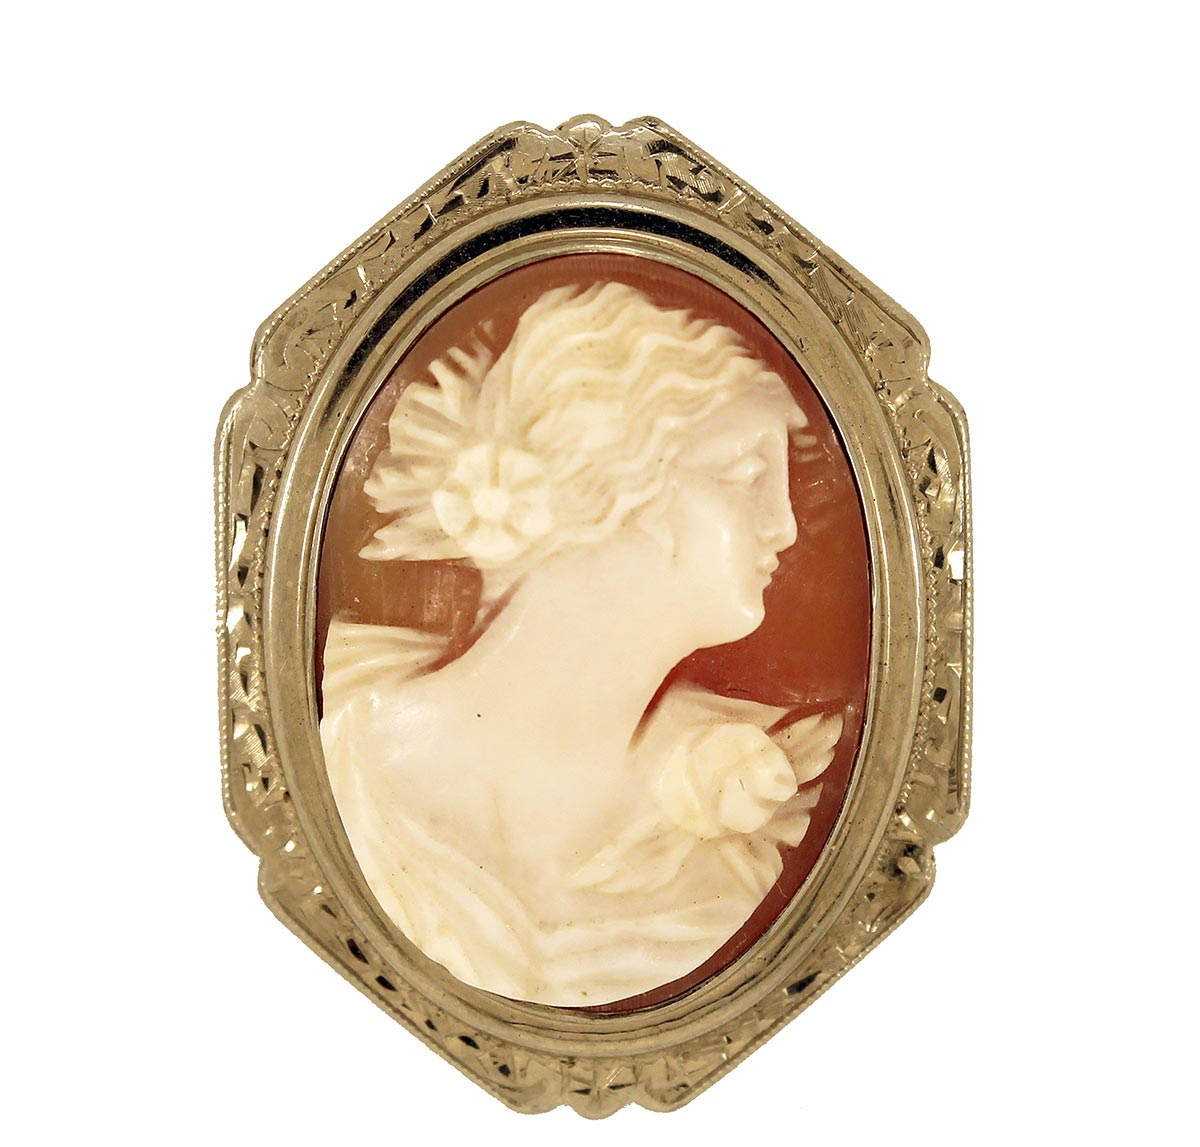 ANTIQUE 14K CAMEO BROOCH WITH HAND CHASED BEZEL & RELIEF SHELL CAMEO OFFERED BY ANTIQUE DIGGER